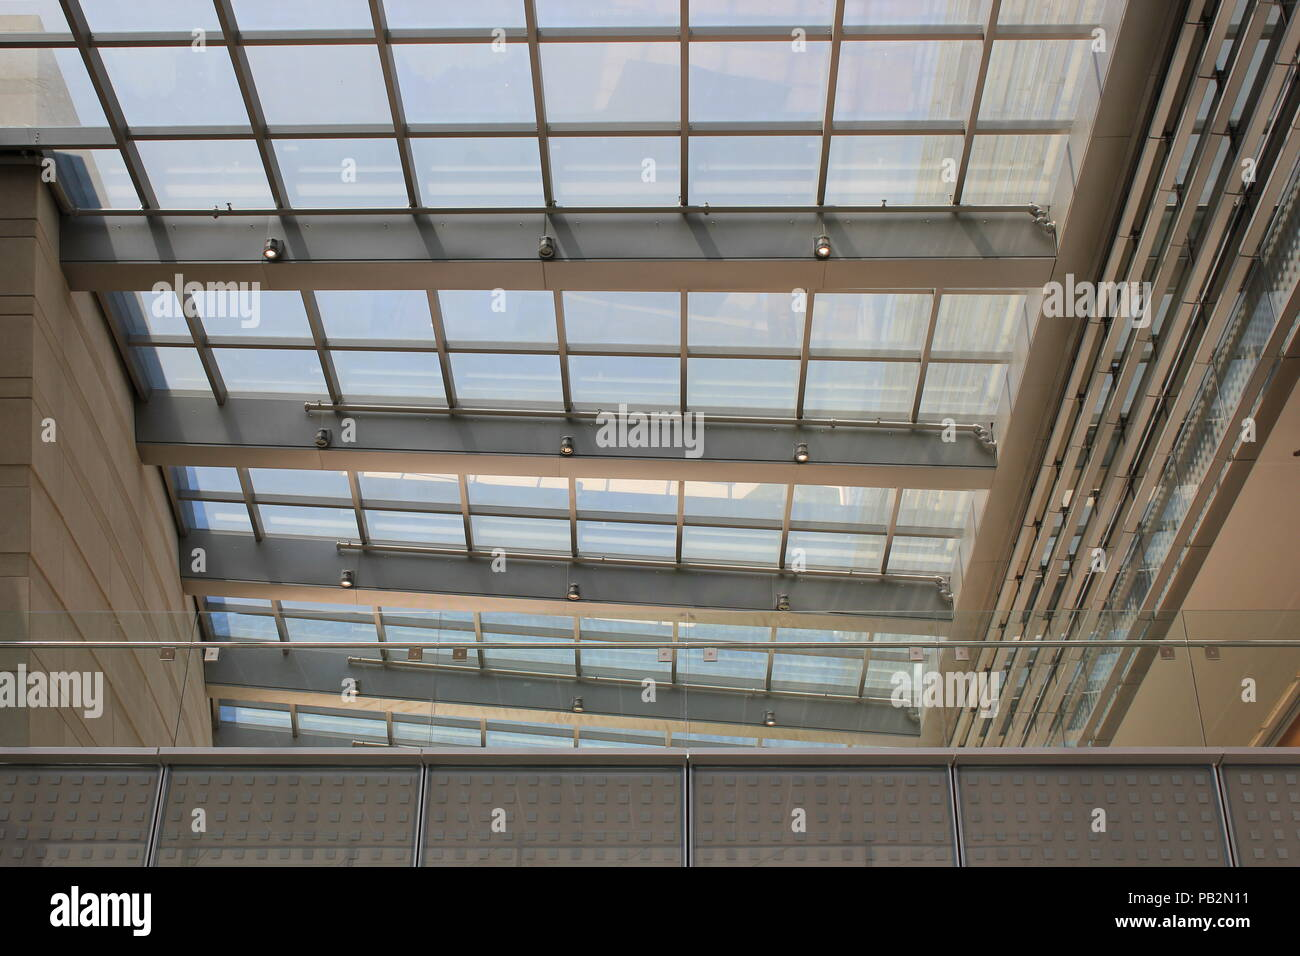 Northwestern University Bienen School of Music building interior roof skylight in the summer in Evanston, Illinois. - Stock Image